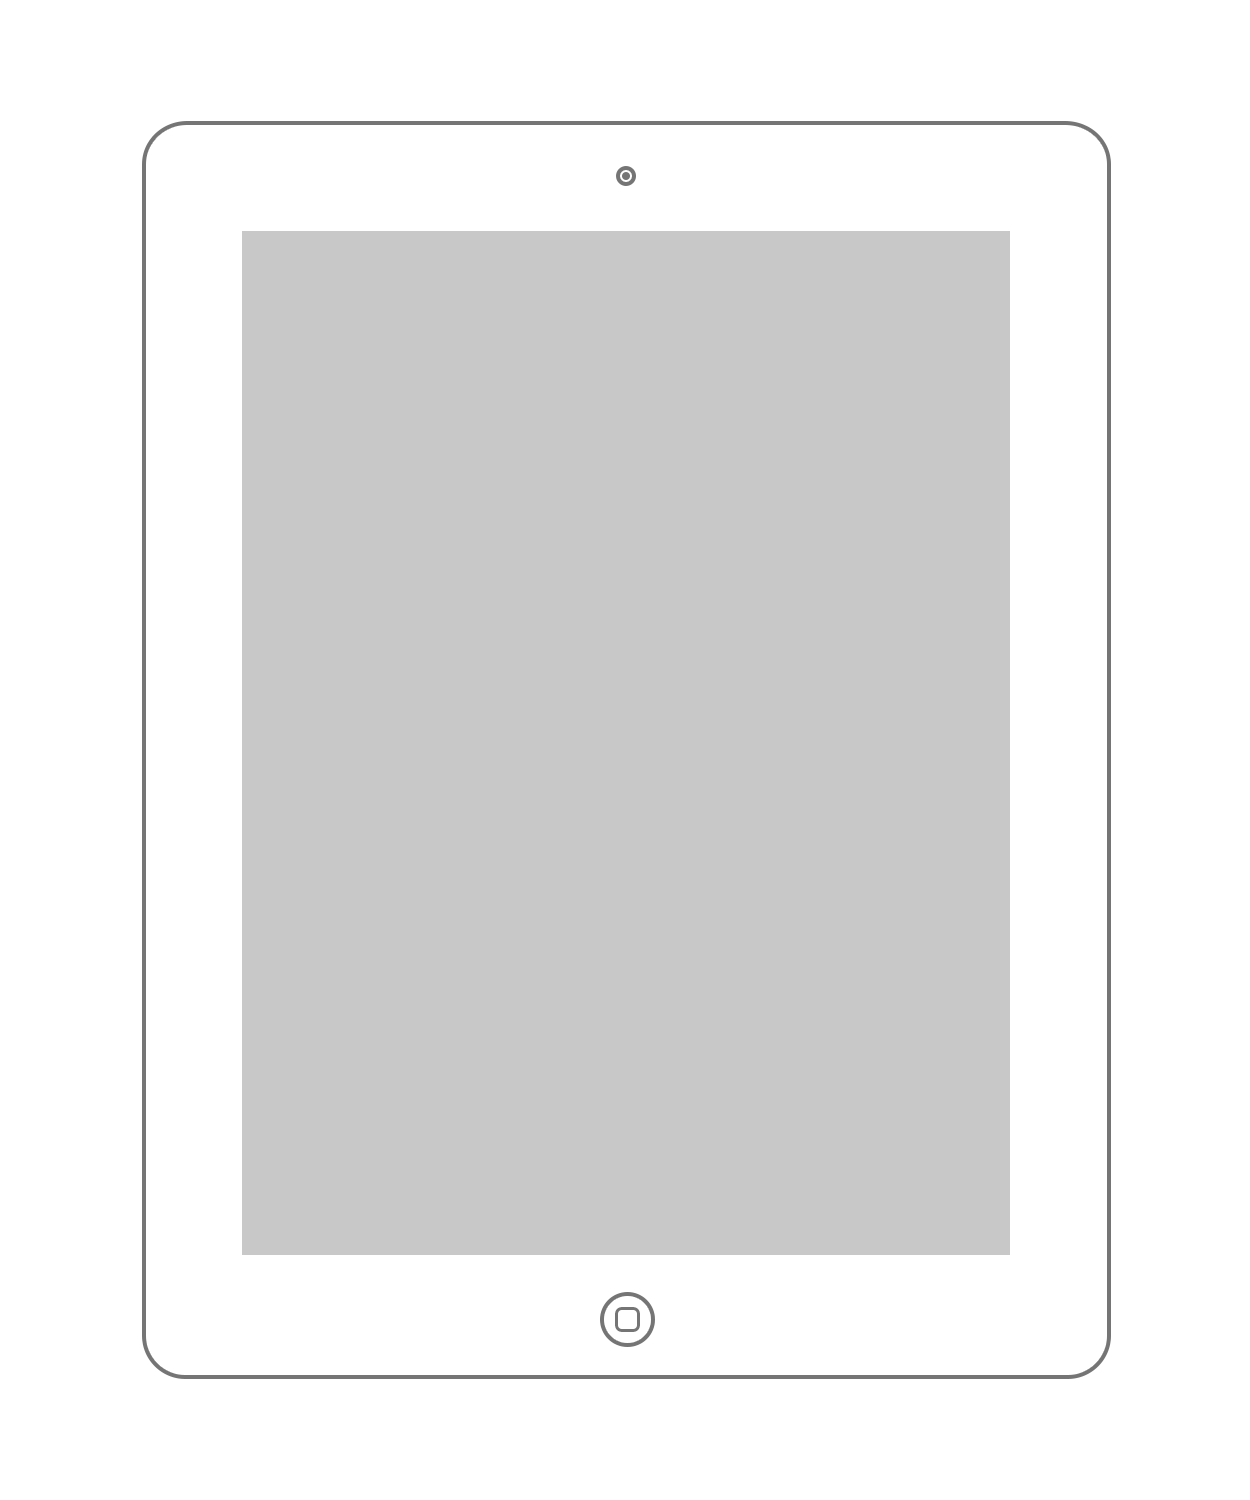 Drawing ipad outline. Apple products minimal wireframe